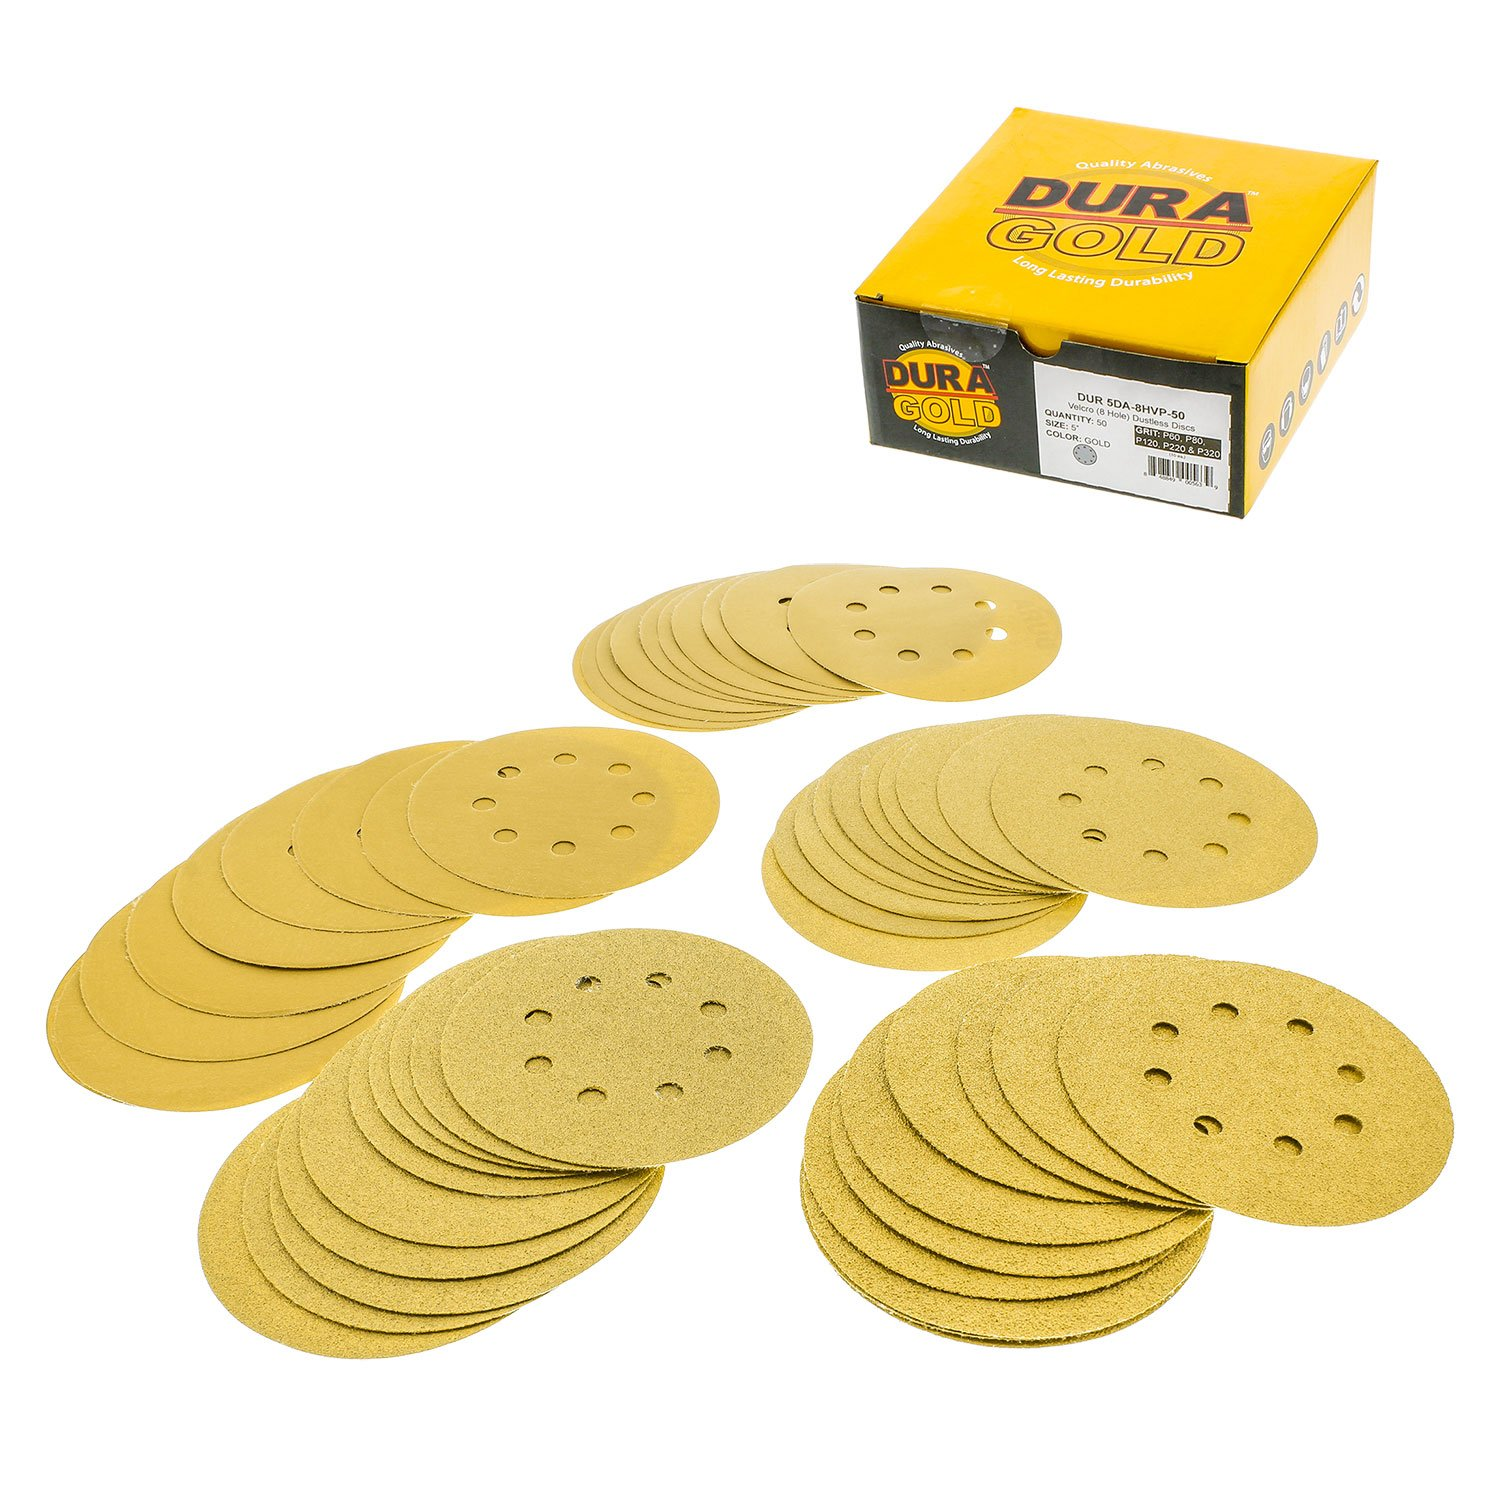 Dura-Gold Premium - Variety Pack - 5'' Gold Sanding Discs - 8-Hole Dustless Hook and Loop - 10 each of Grit (60, 80, 120, 220, 320) -Box of 50 Sandpaper Finishing Discs for Woodworking or Automotive